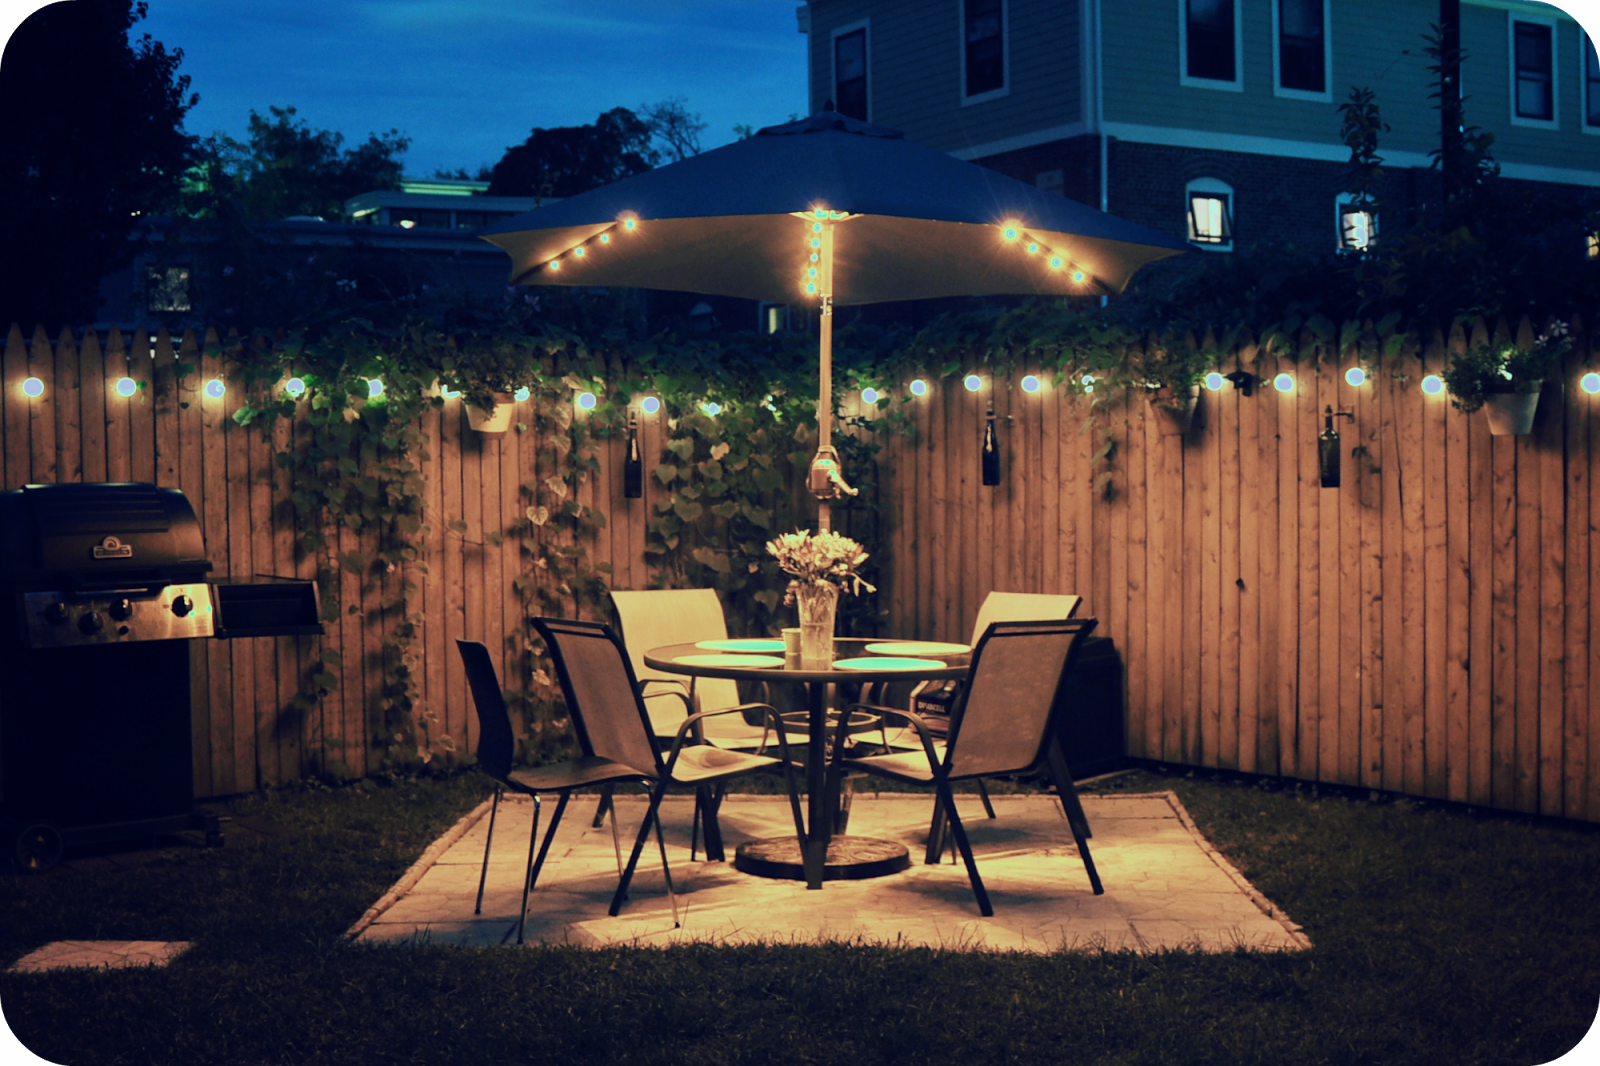 Brighten Up With Hanging Solar Lights Solar Patio Lights Backyard Solar Lights Solar Lights Garden